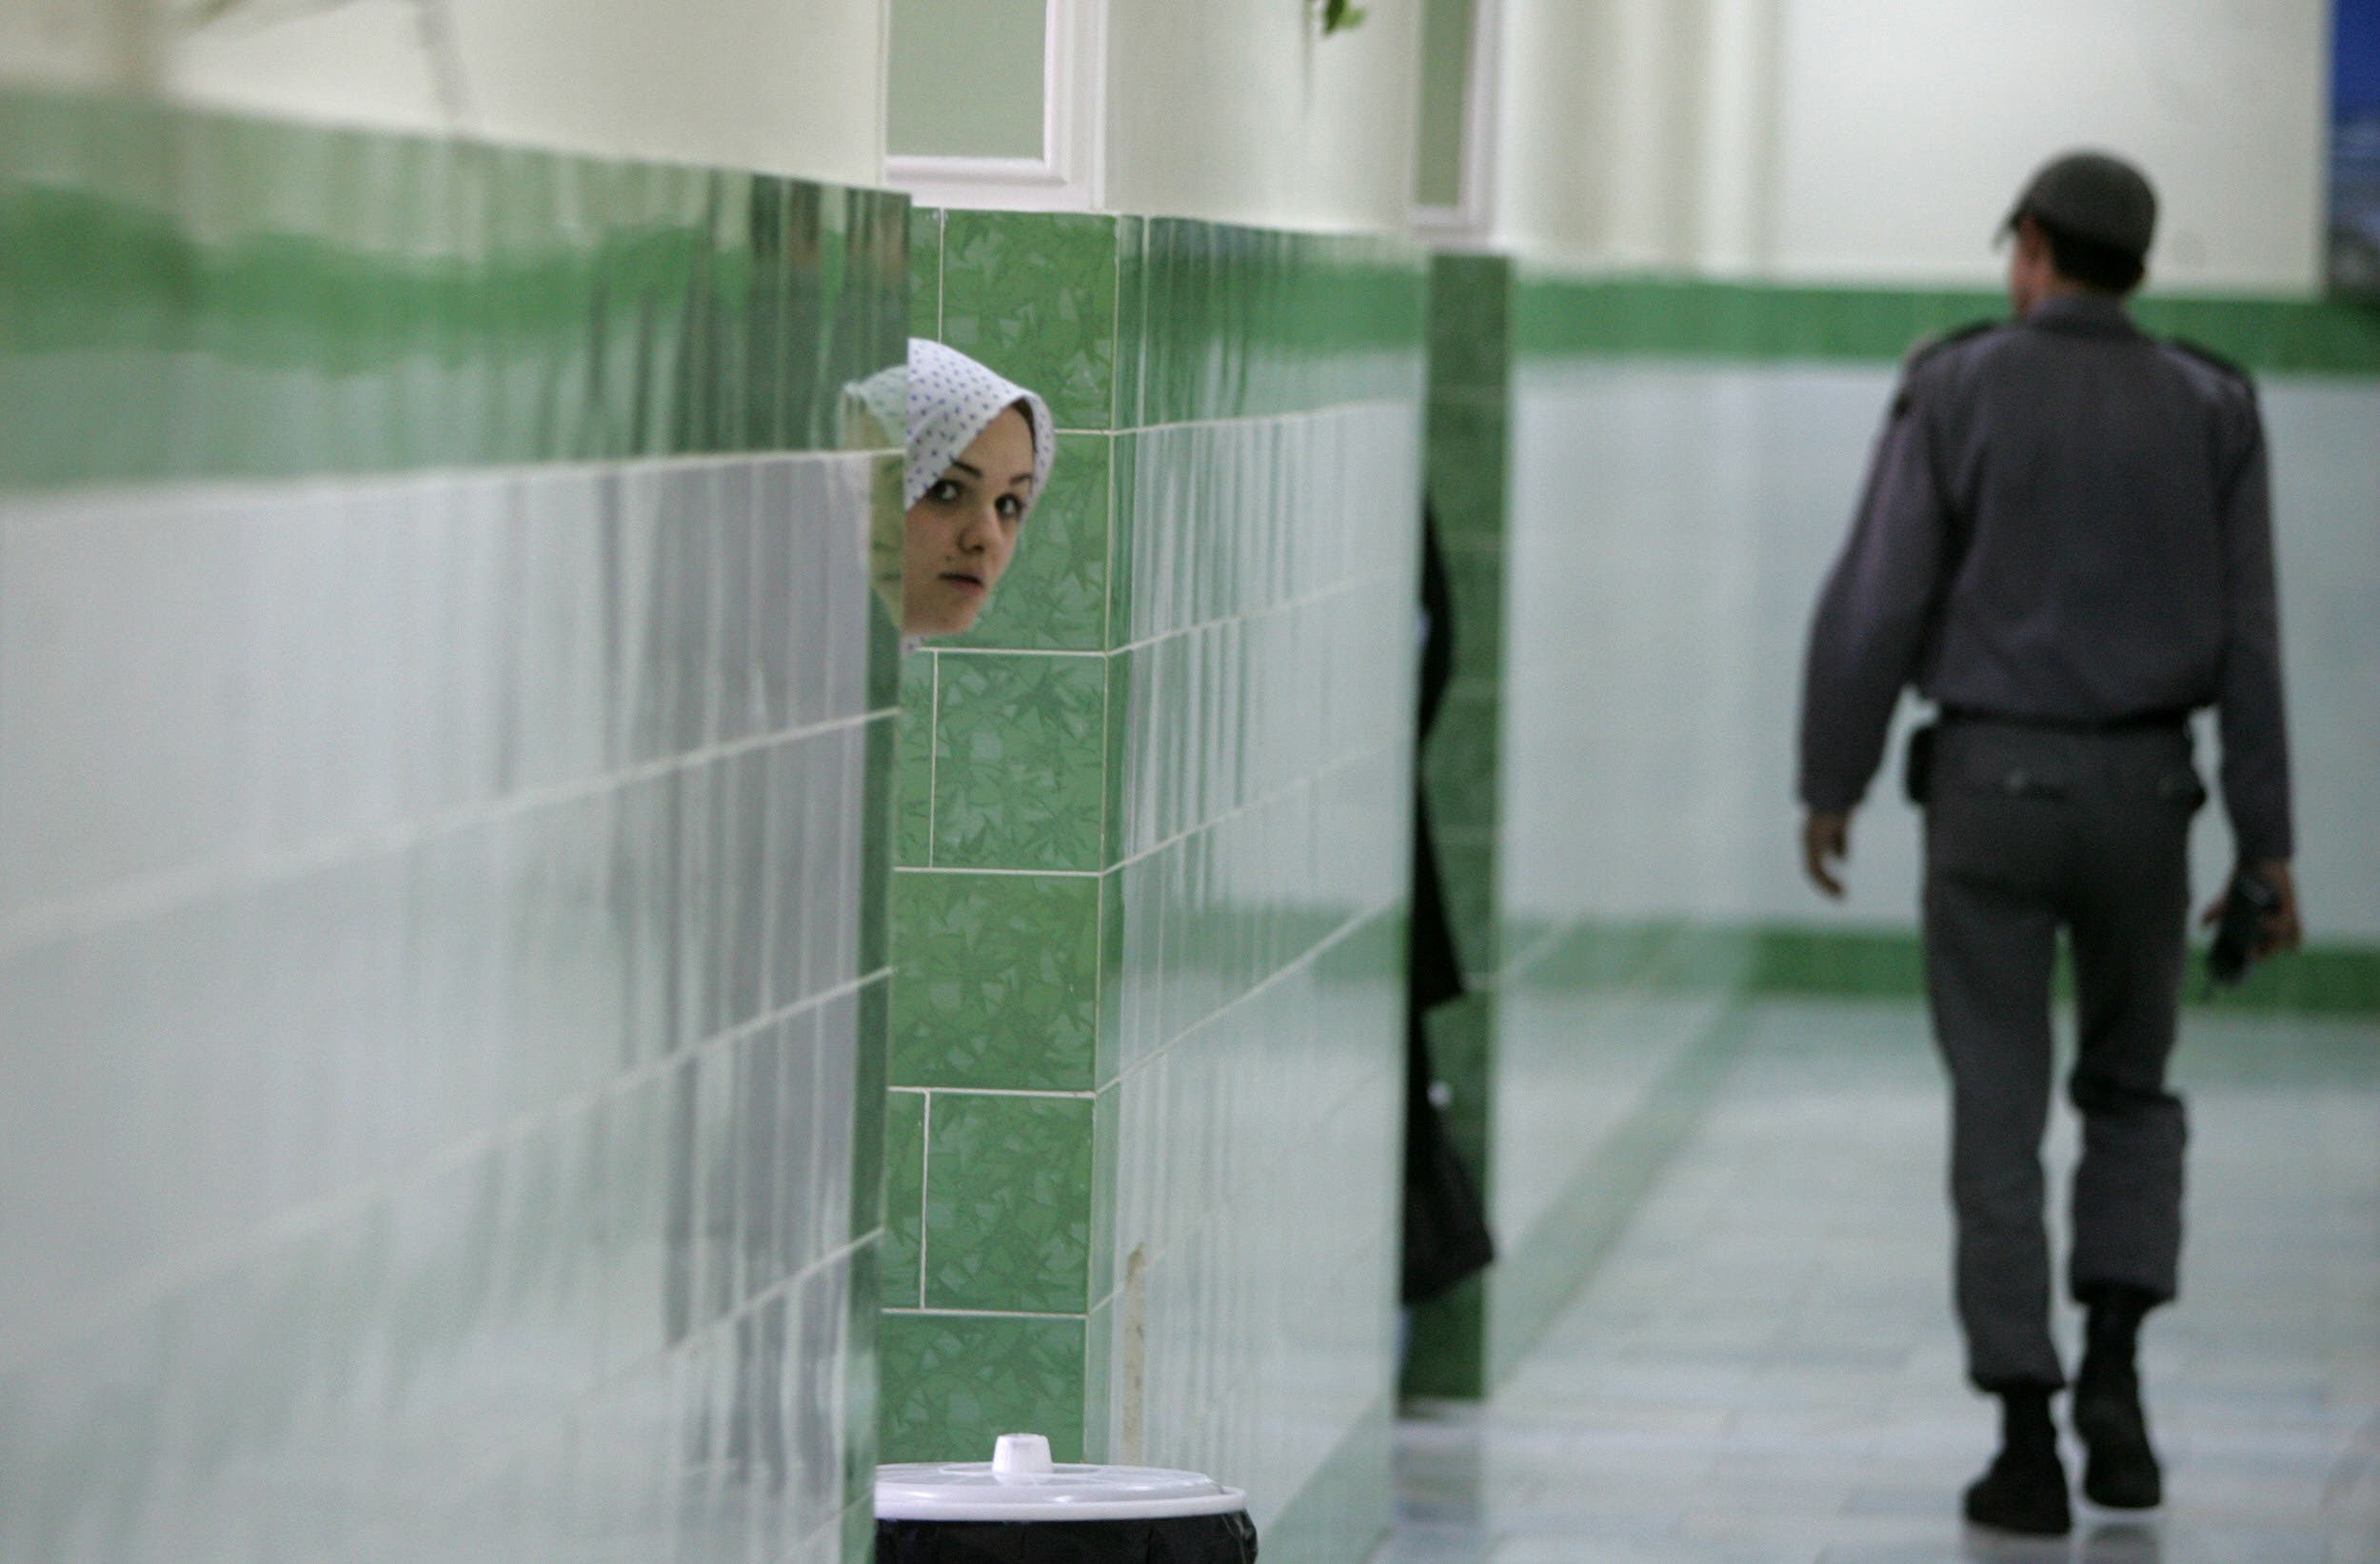 An Iranian inmate peers from behind a wall as a guard walks by at Evin jail, north of Tehran on June 13, 2006. (File photo: AFP)